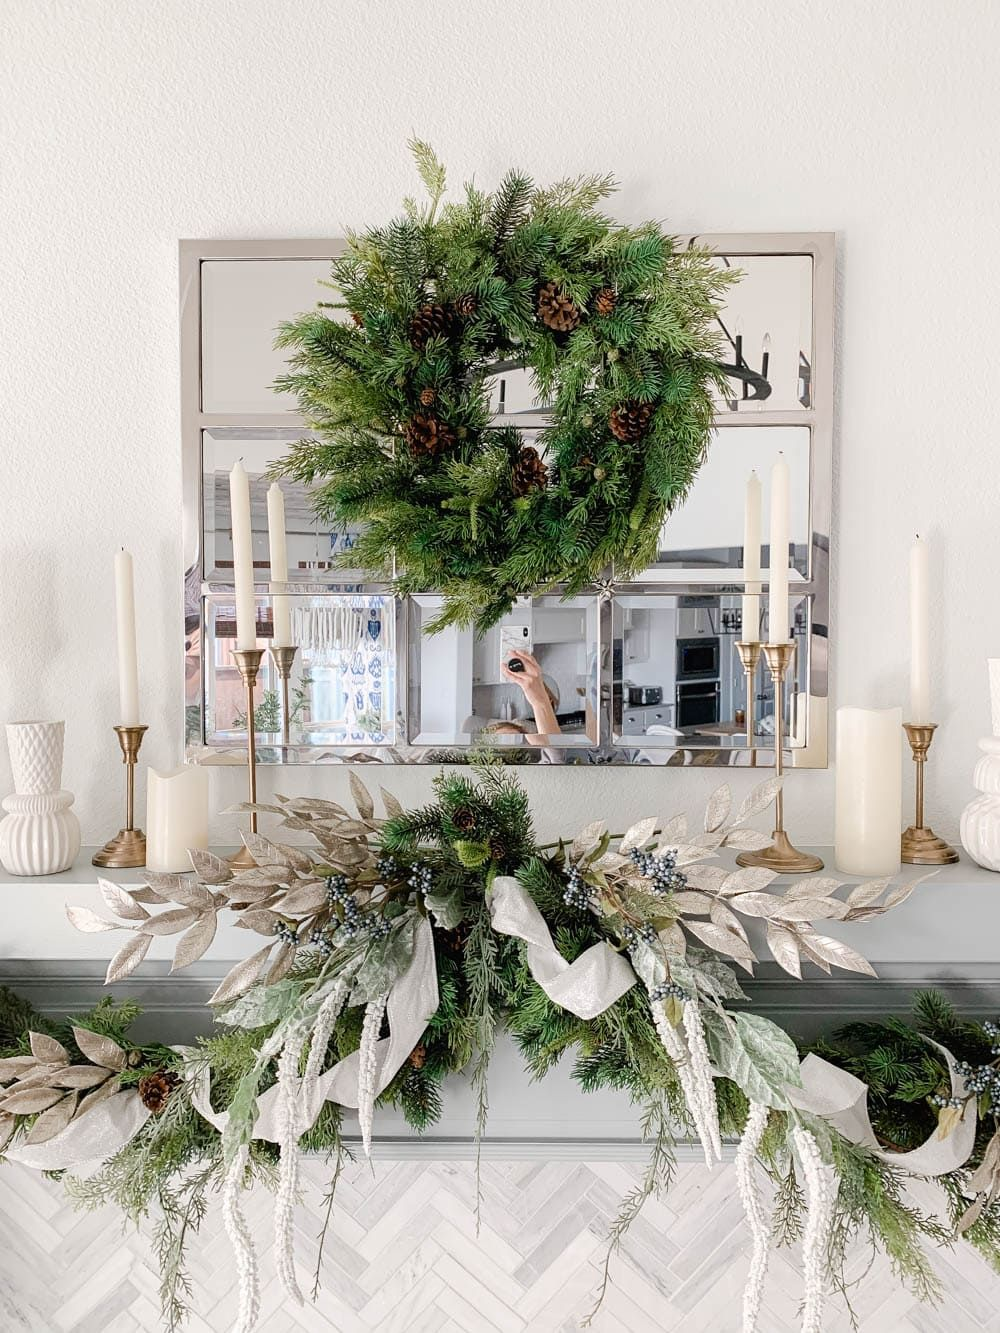 How To Hang A Holiday Garland Without Damaging Your Walls Or Mantle In 2020 Holiday Mantle Decor Holiday Garlands Christmas Mantle